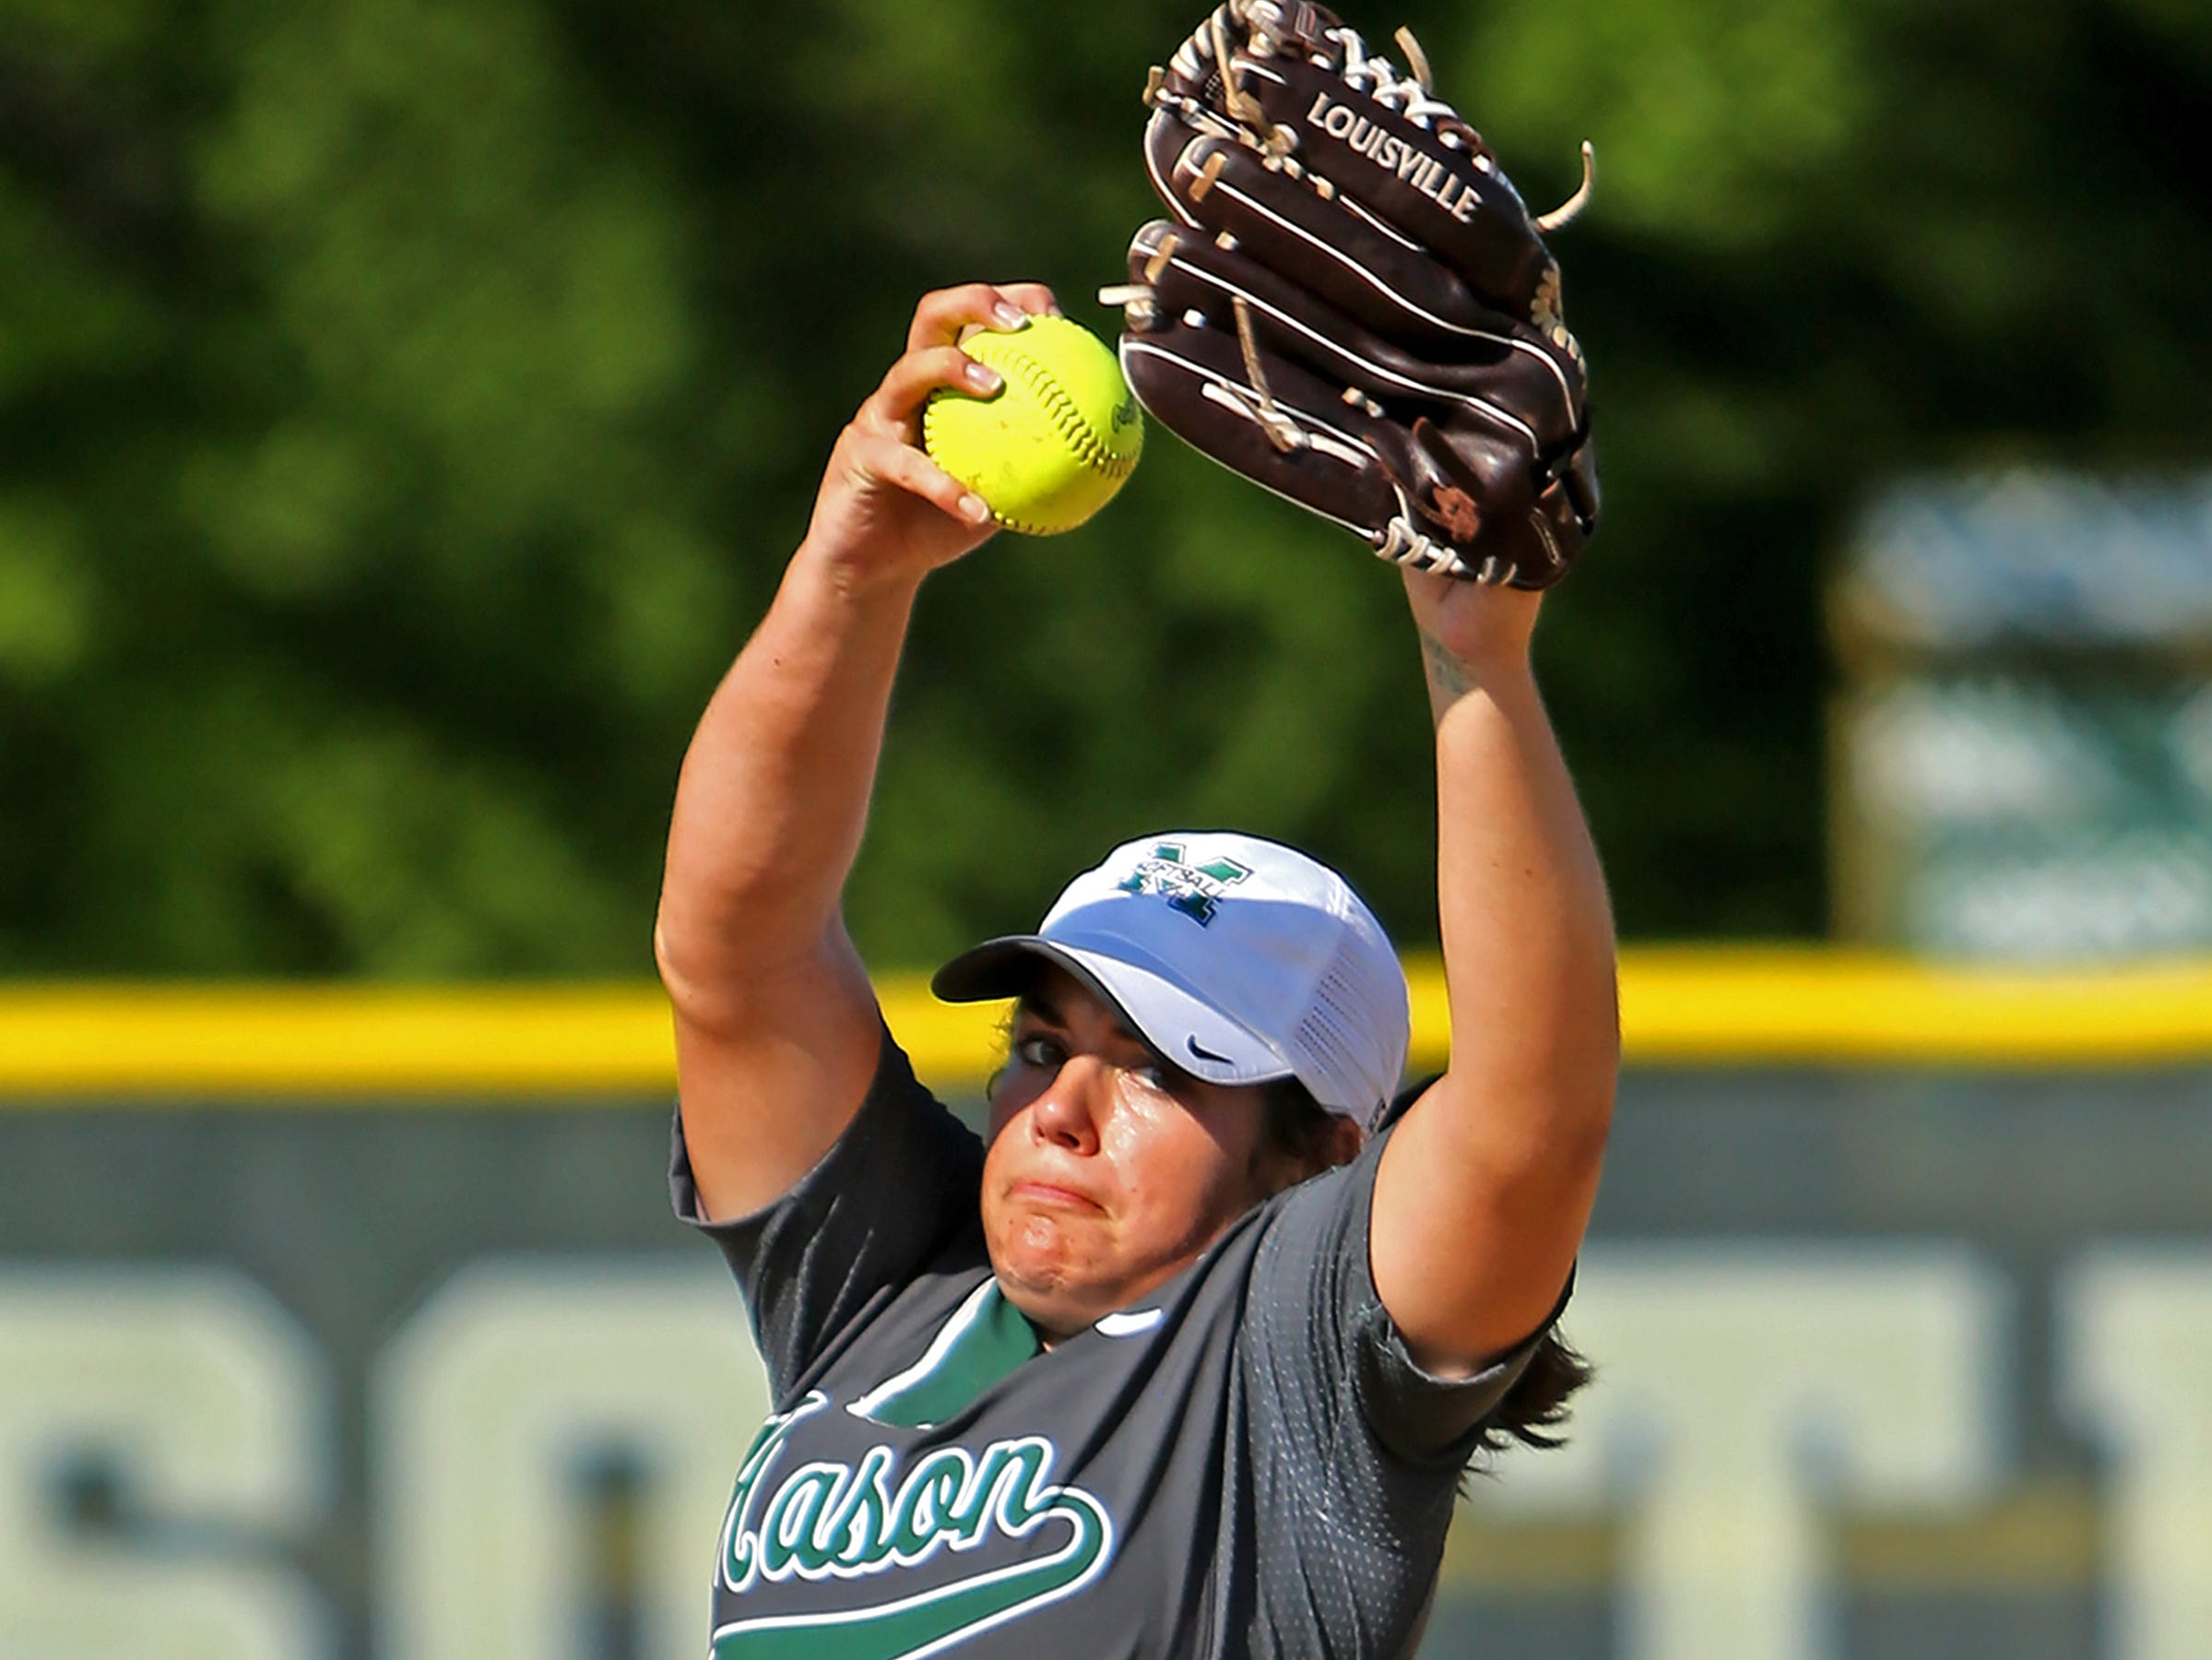 Mason's Elle Buffenbarger pitches a complete game shutout against Anderson. Mason defeated Anderson 13-0 in 5 innings.